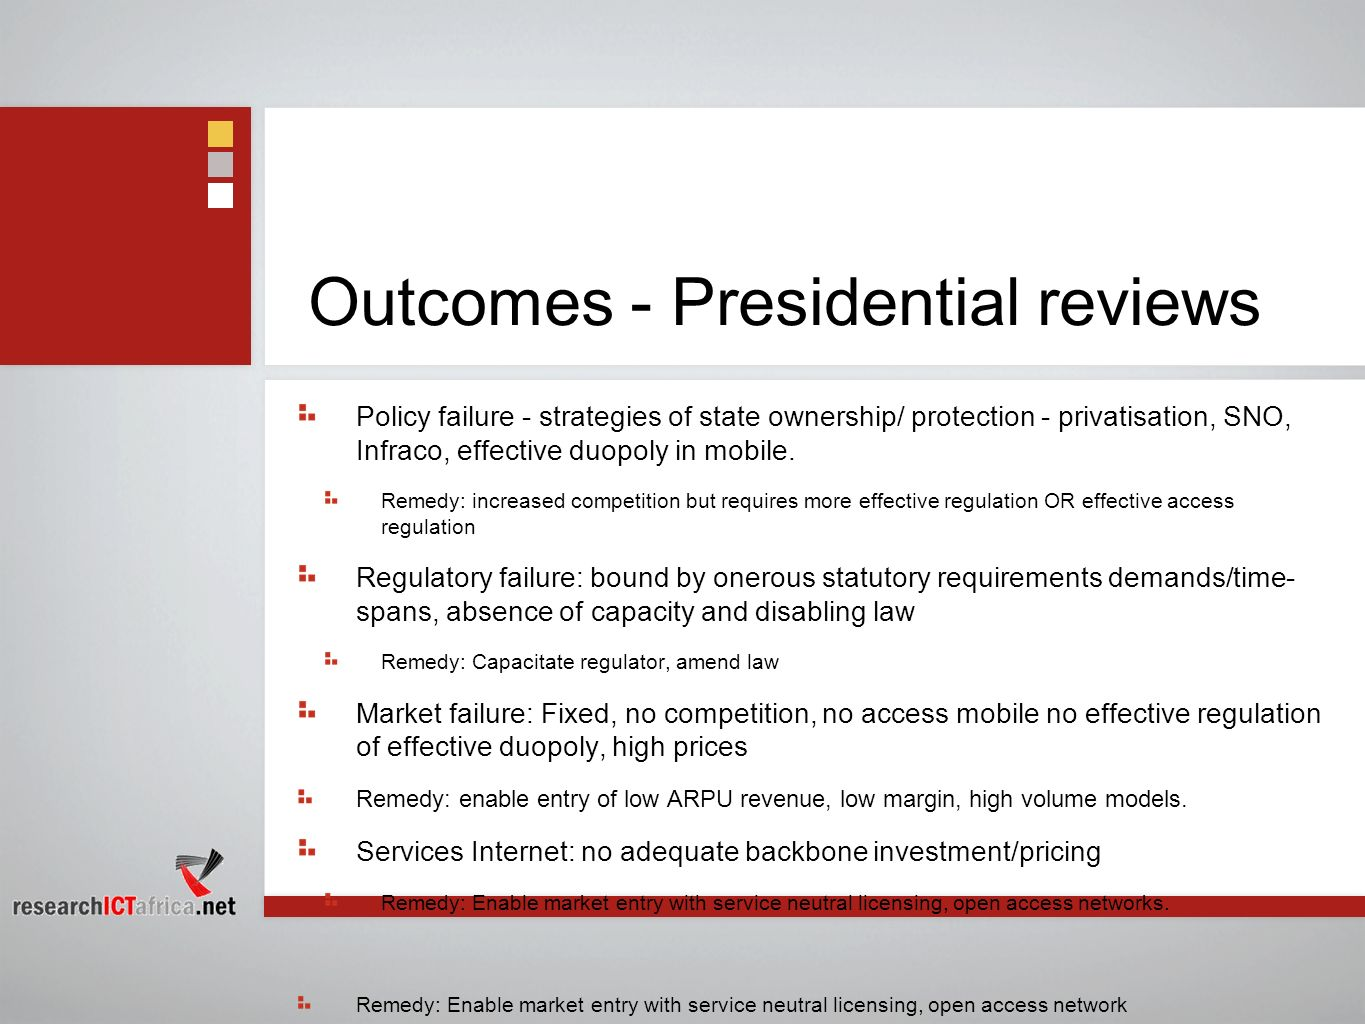 Outcomes - Presidential reviews Policy failure - strategies of state ownership/ protection - privatisation, SNO, Infraco, effective duopoly in mobile.